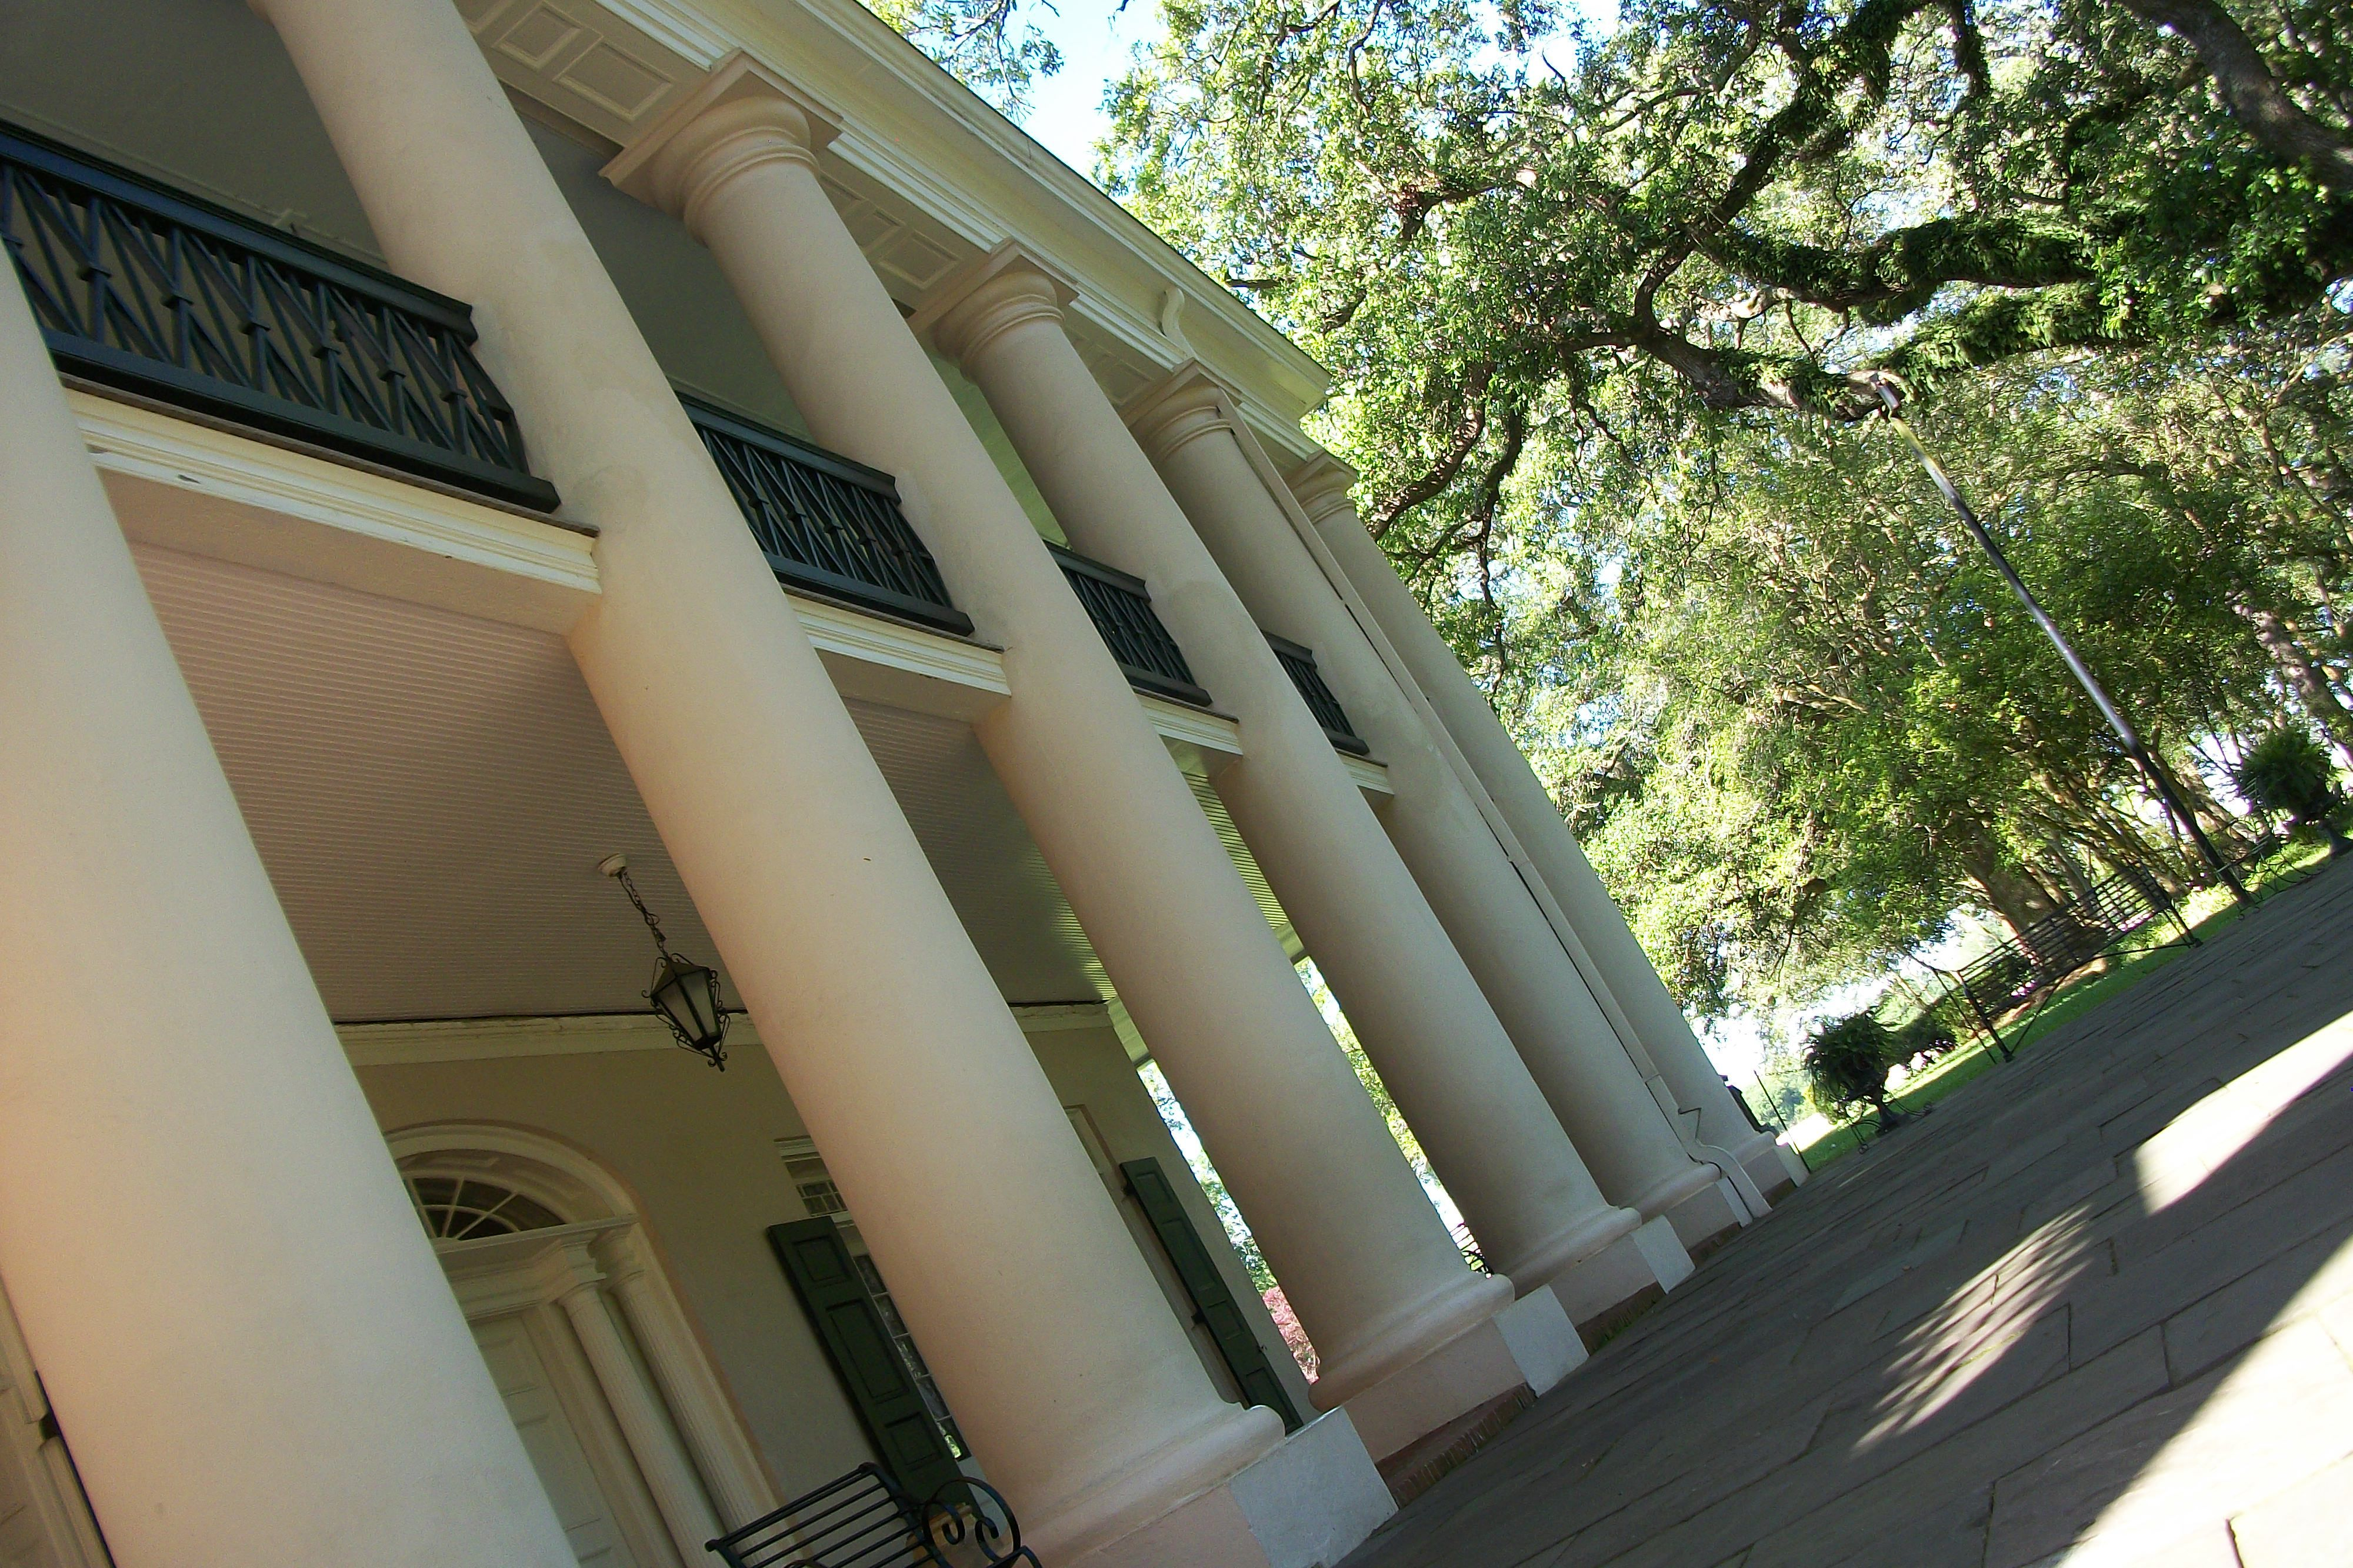 Oak alley plantation my photography pinterest photography